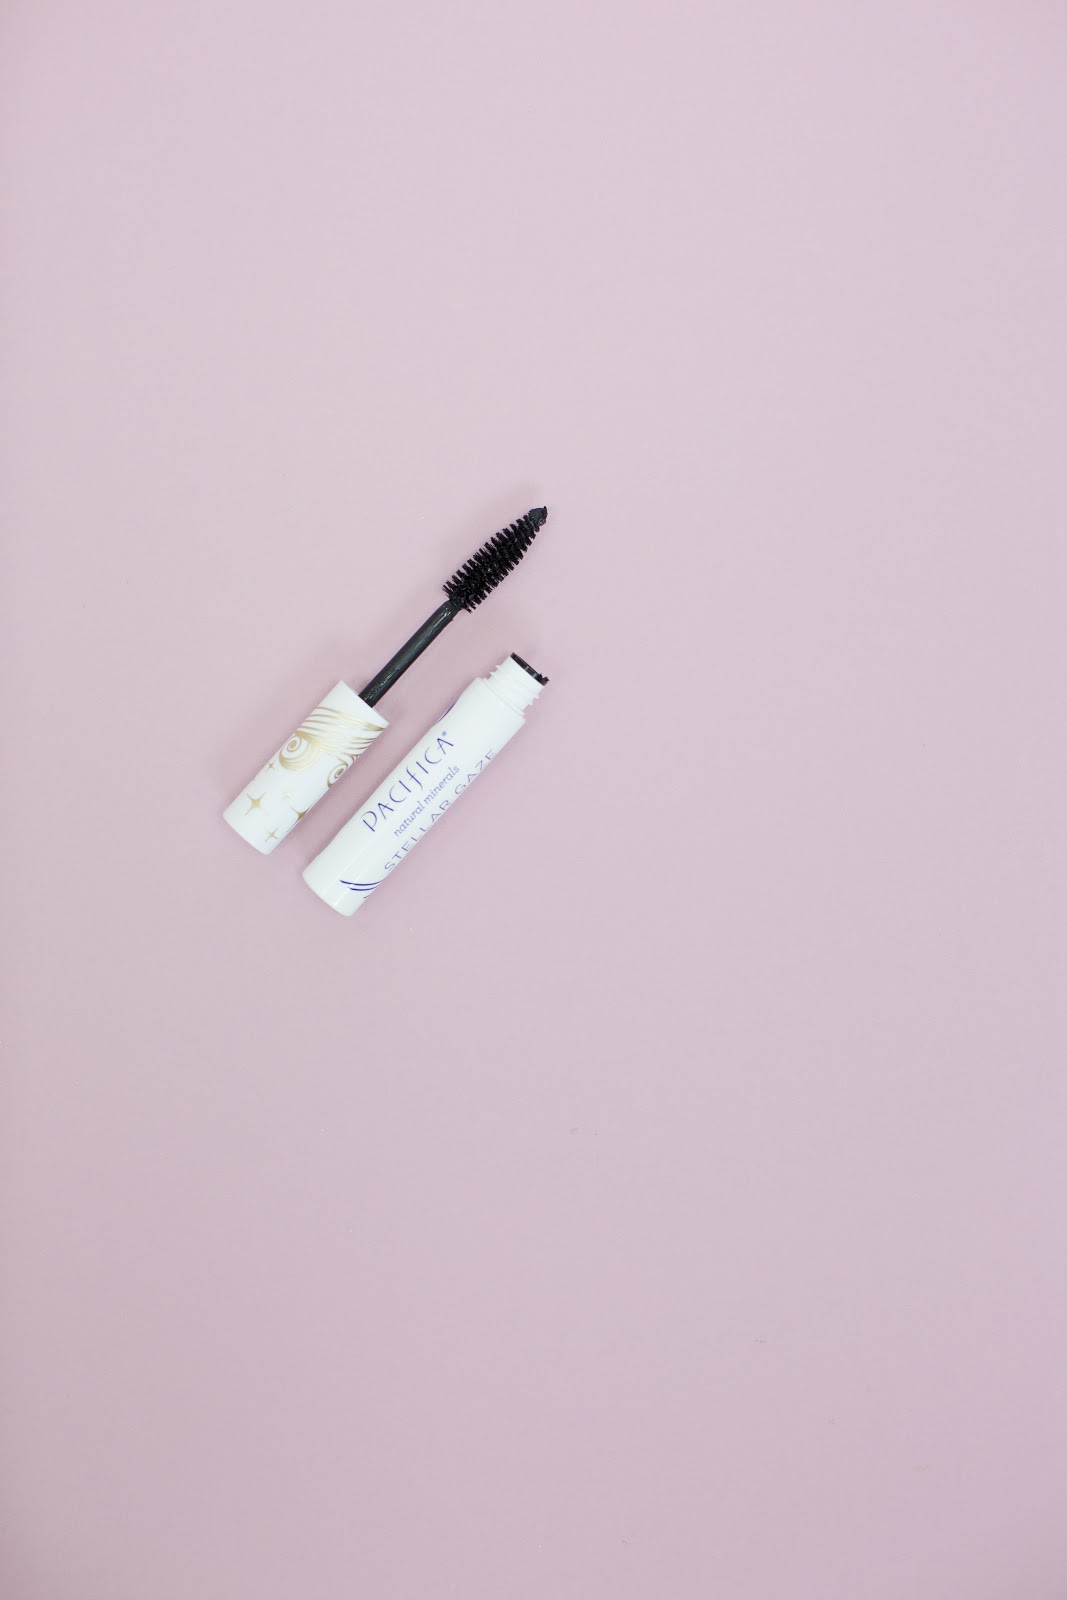 Pacifica Stellar Gaze Mineral Mascara – This mascara is very similar to Too Faced, however the ingredients are sustainable and as a brand, are focused more ...